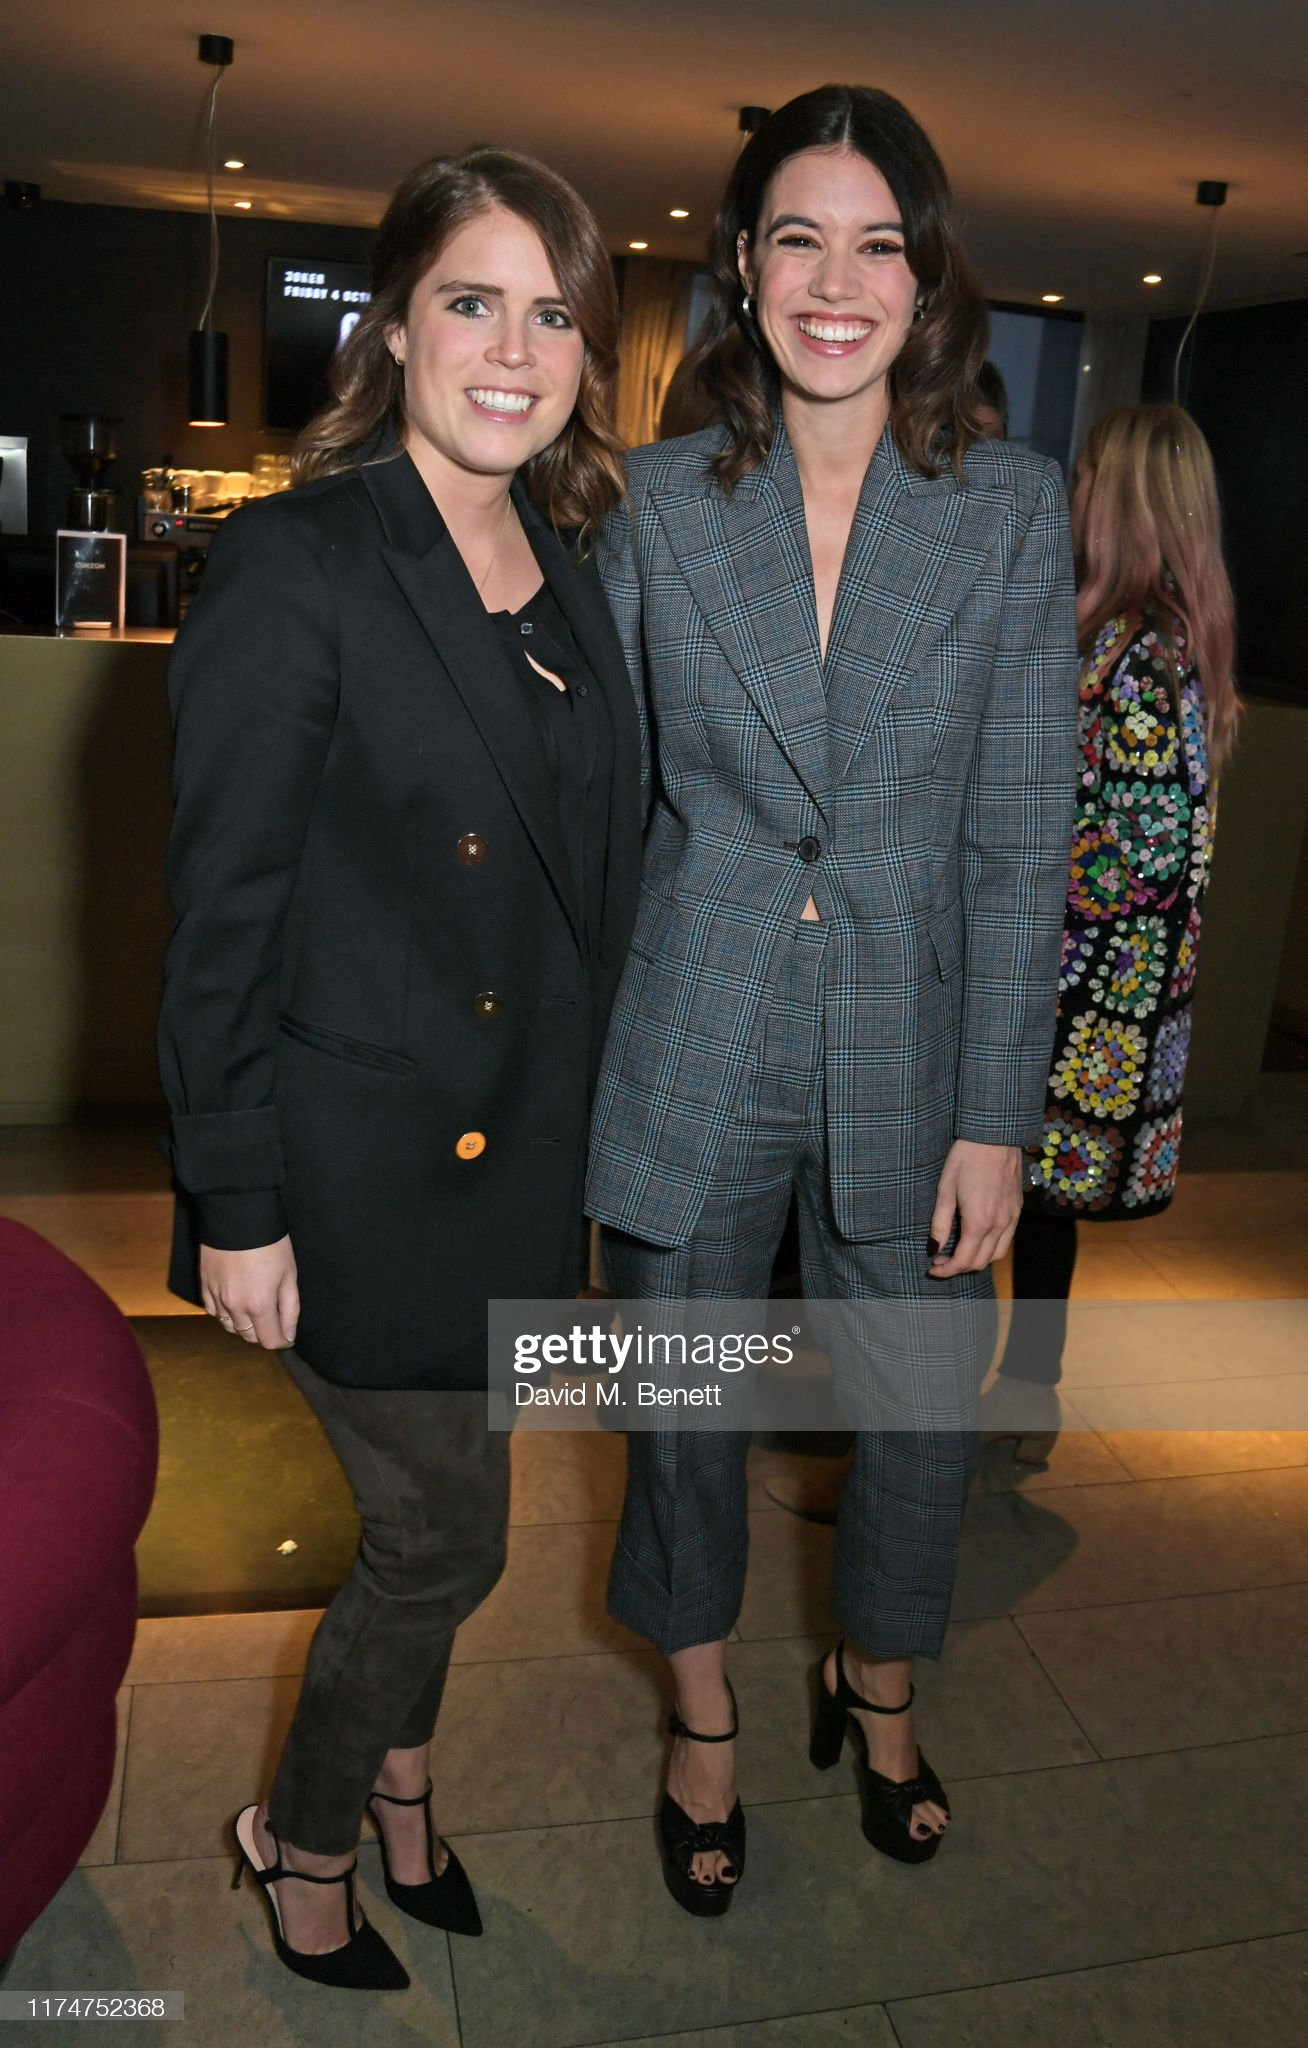 https://media.gettyimages.com/photos/princess-eugenie-of-york-and-gala-gordon-attend-a-special-screening-picture-id1174752368?s=2048x2048